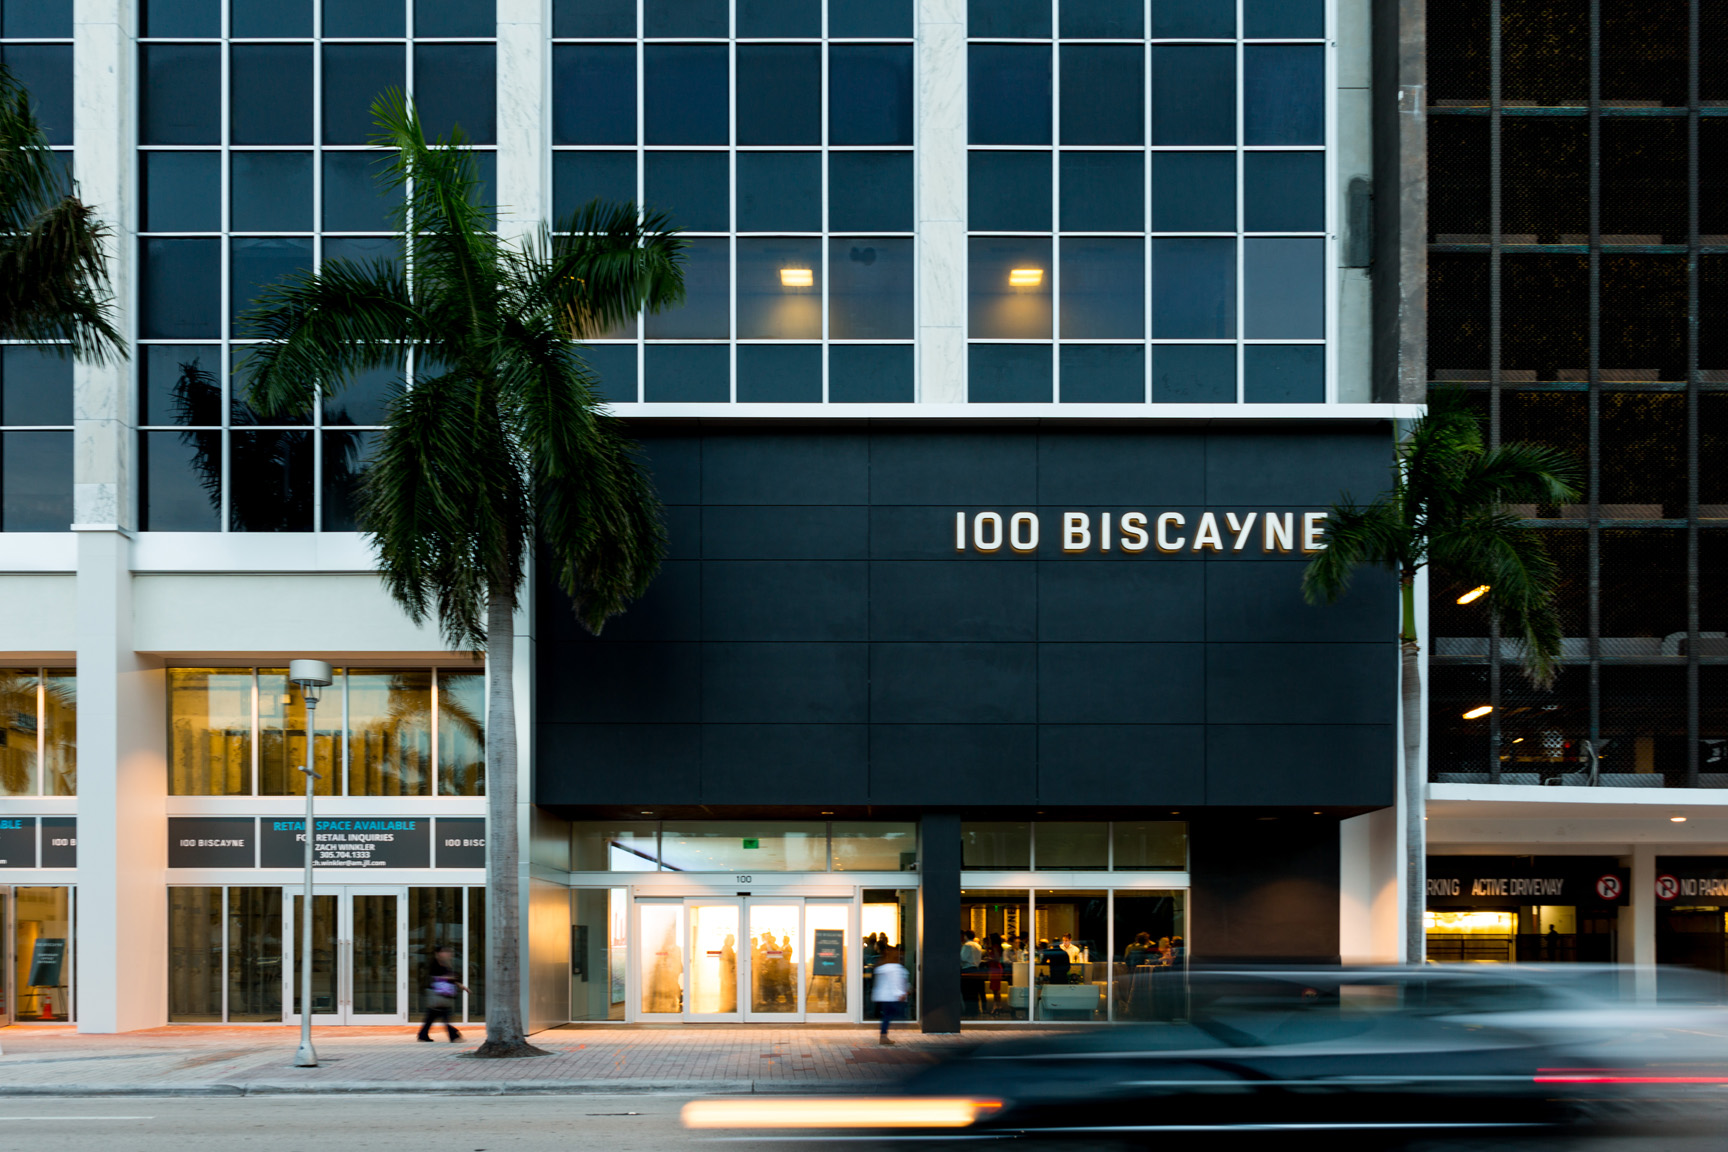 100 Biscayne Commercial Tower